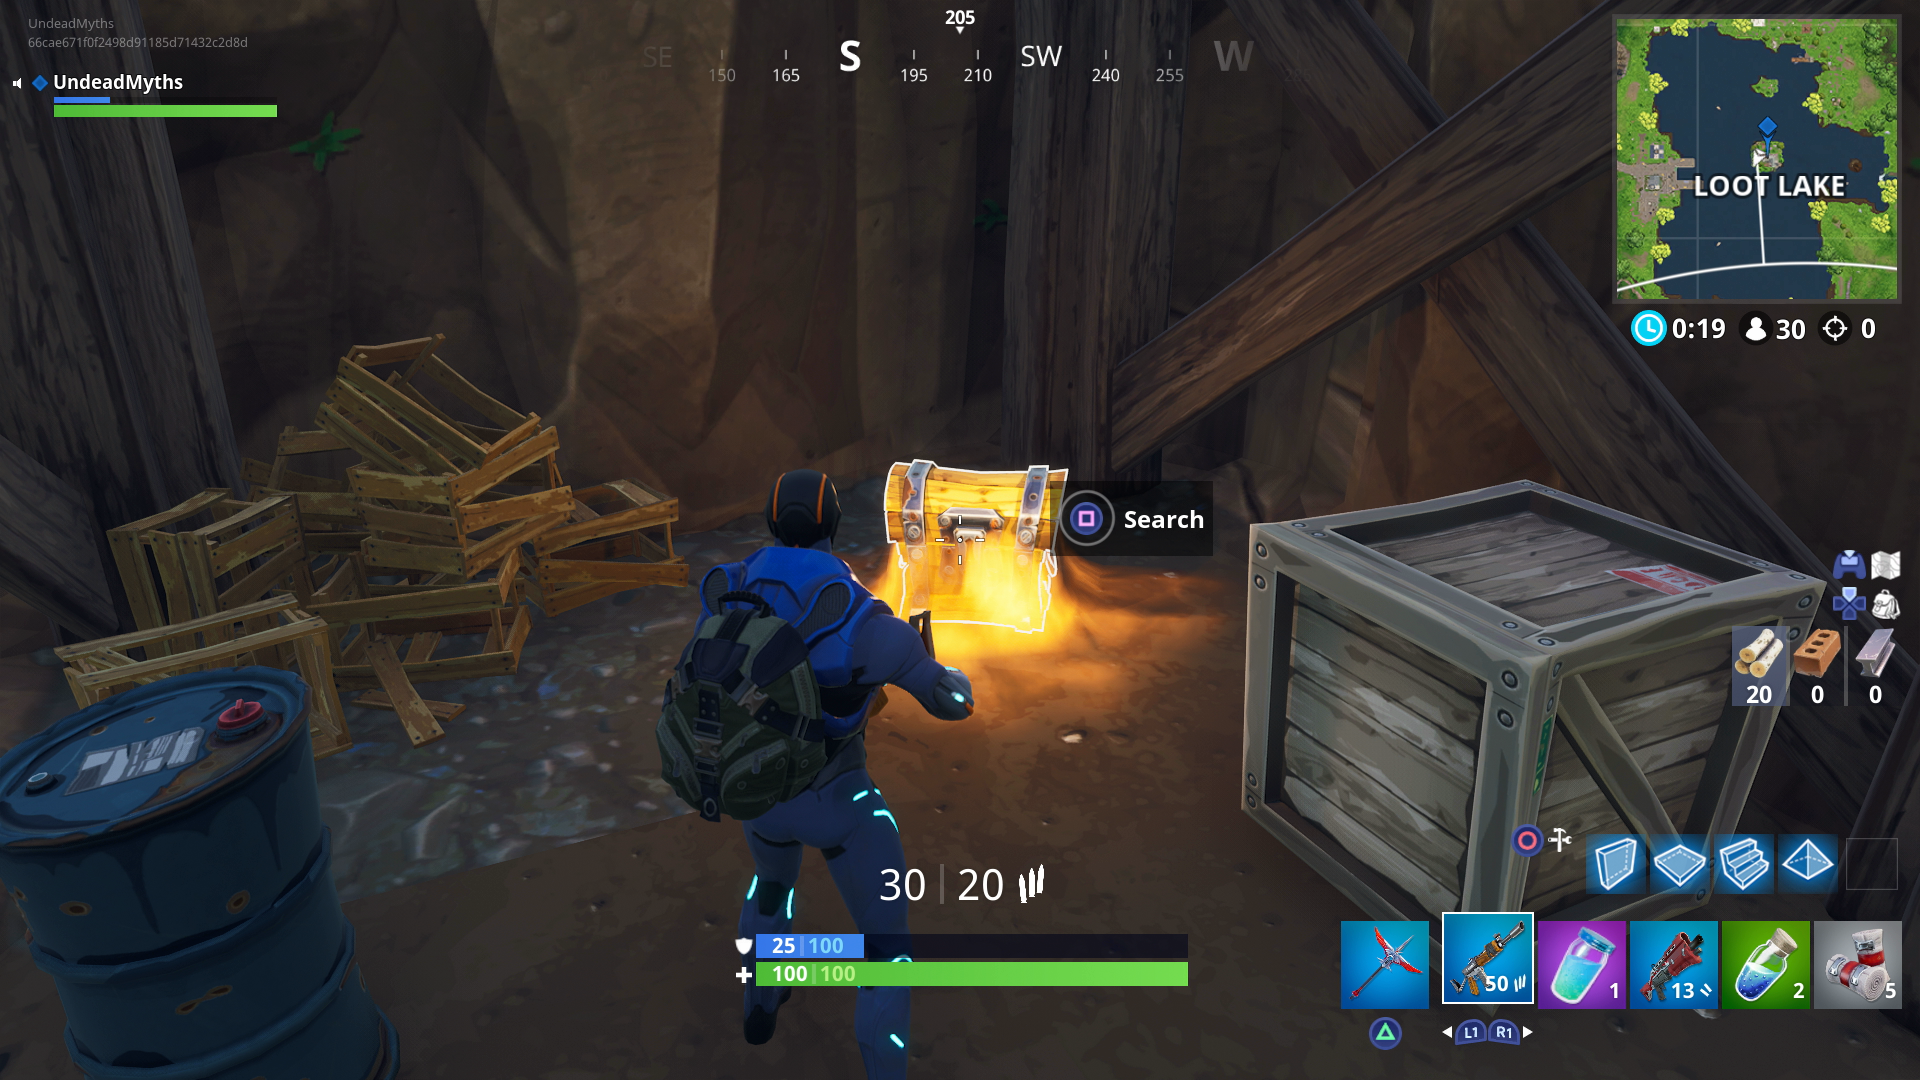 Fortnite Loot Lake Chests All Chest Locations How To